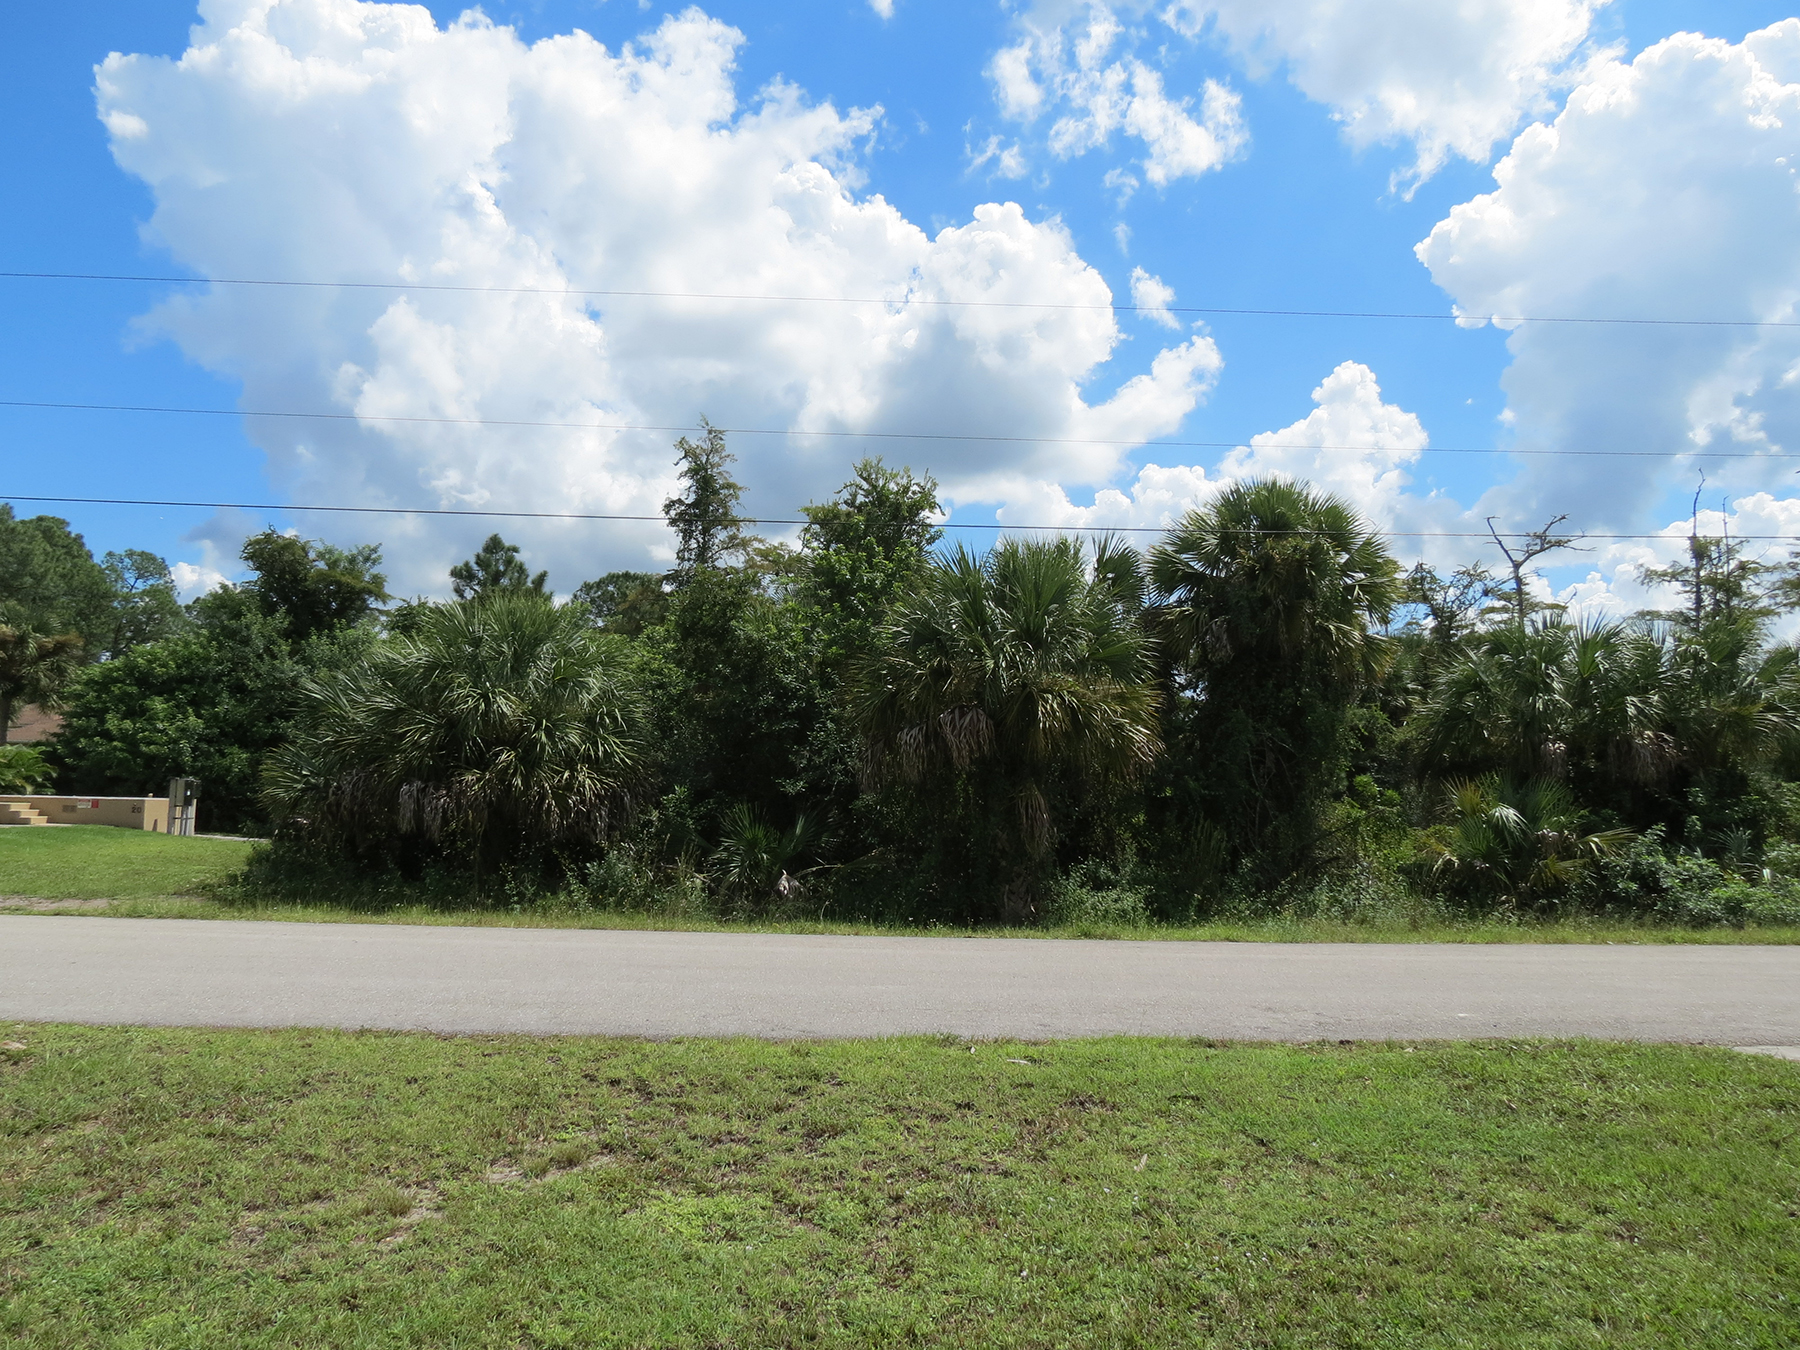 Land for Sale at GOLDEN GATE ESTATES 8th St SE Naples, Florida, 34117 United States